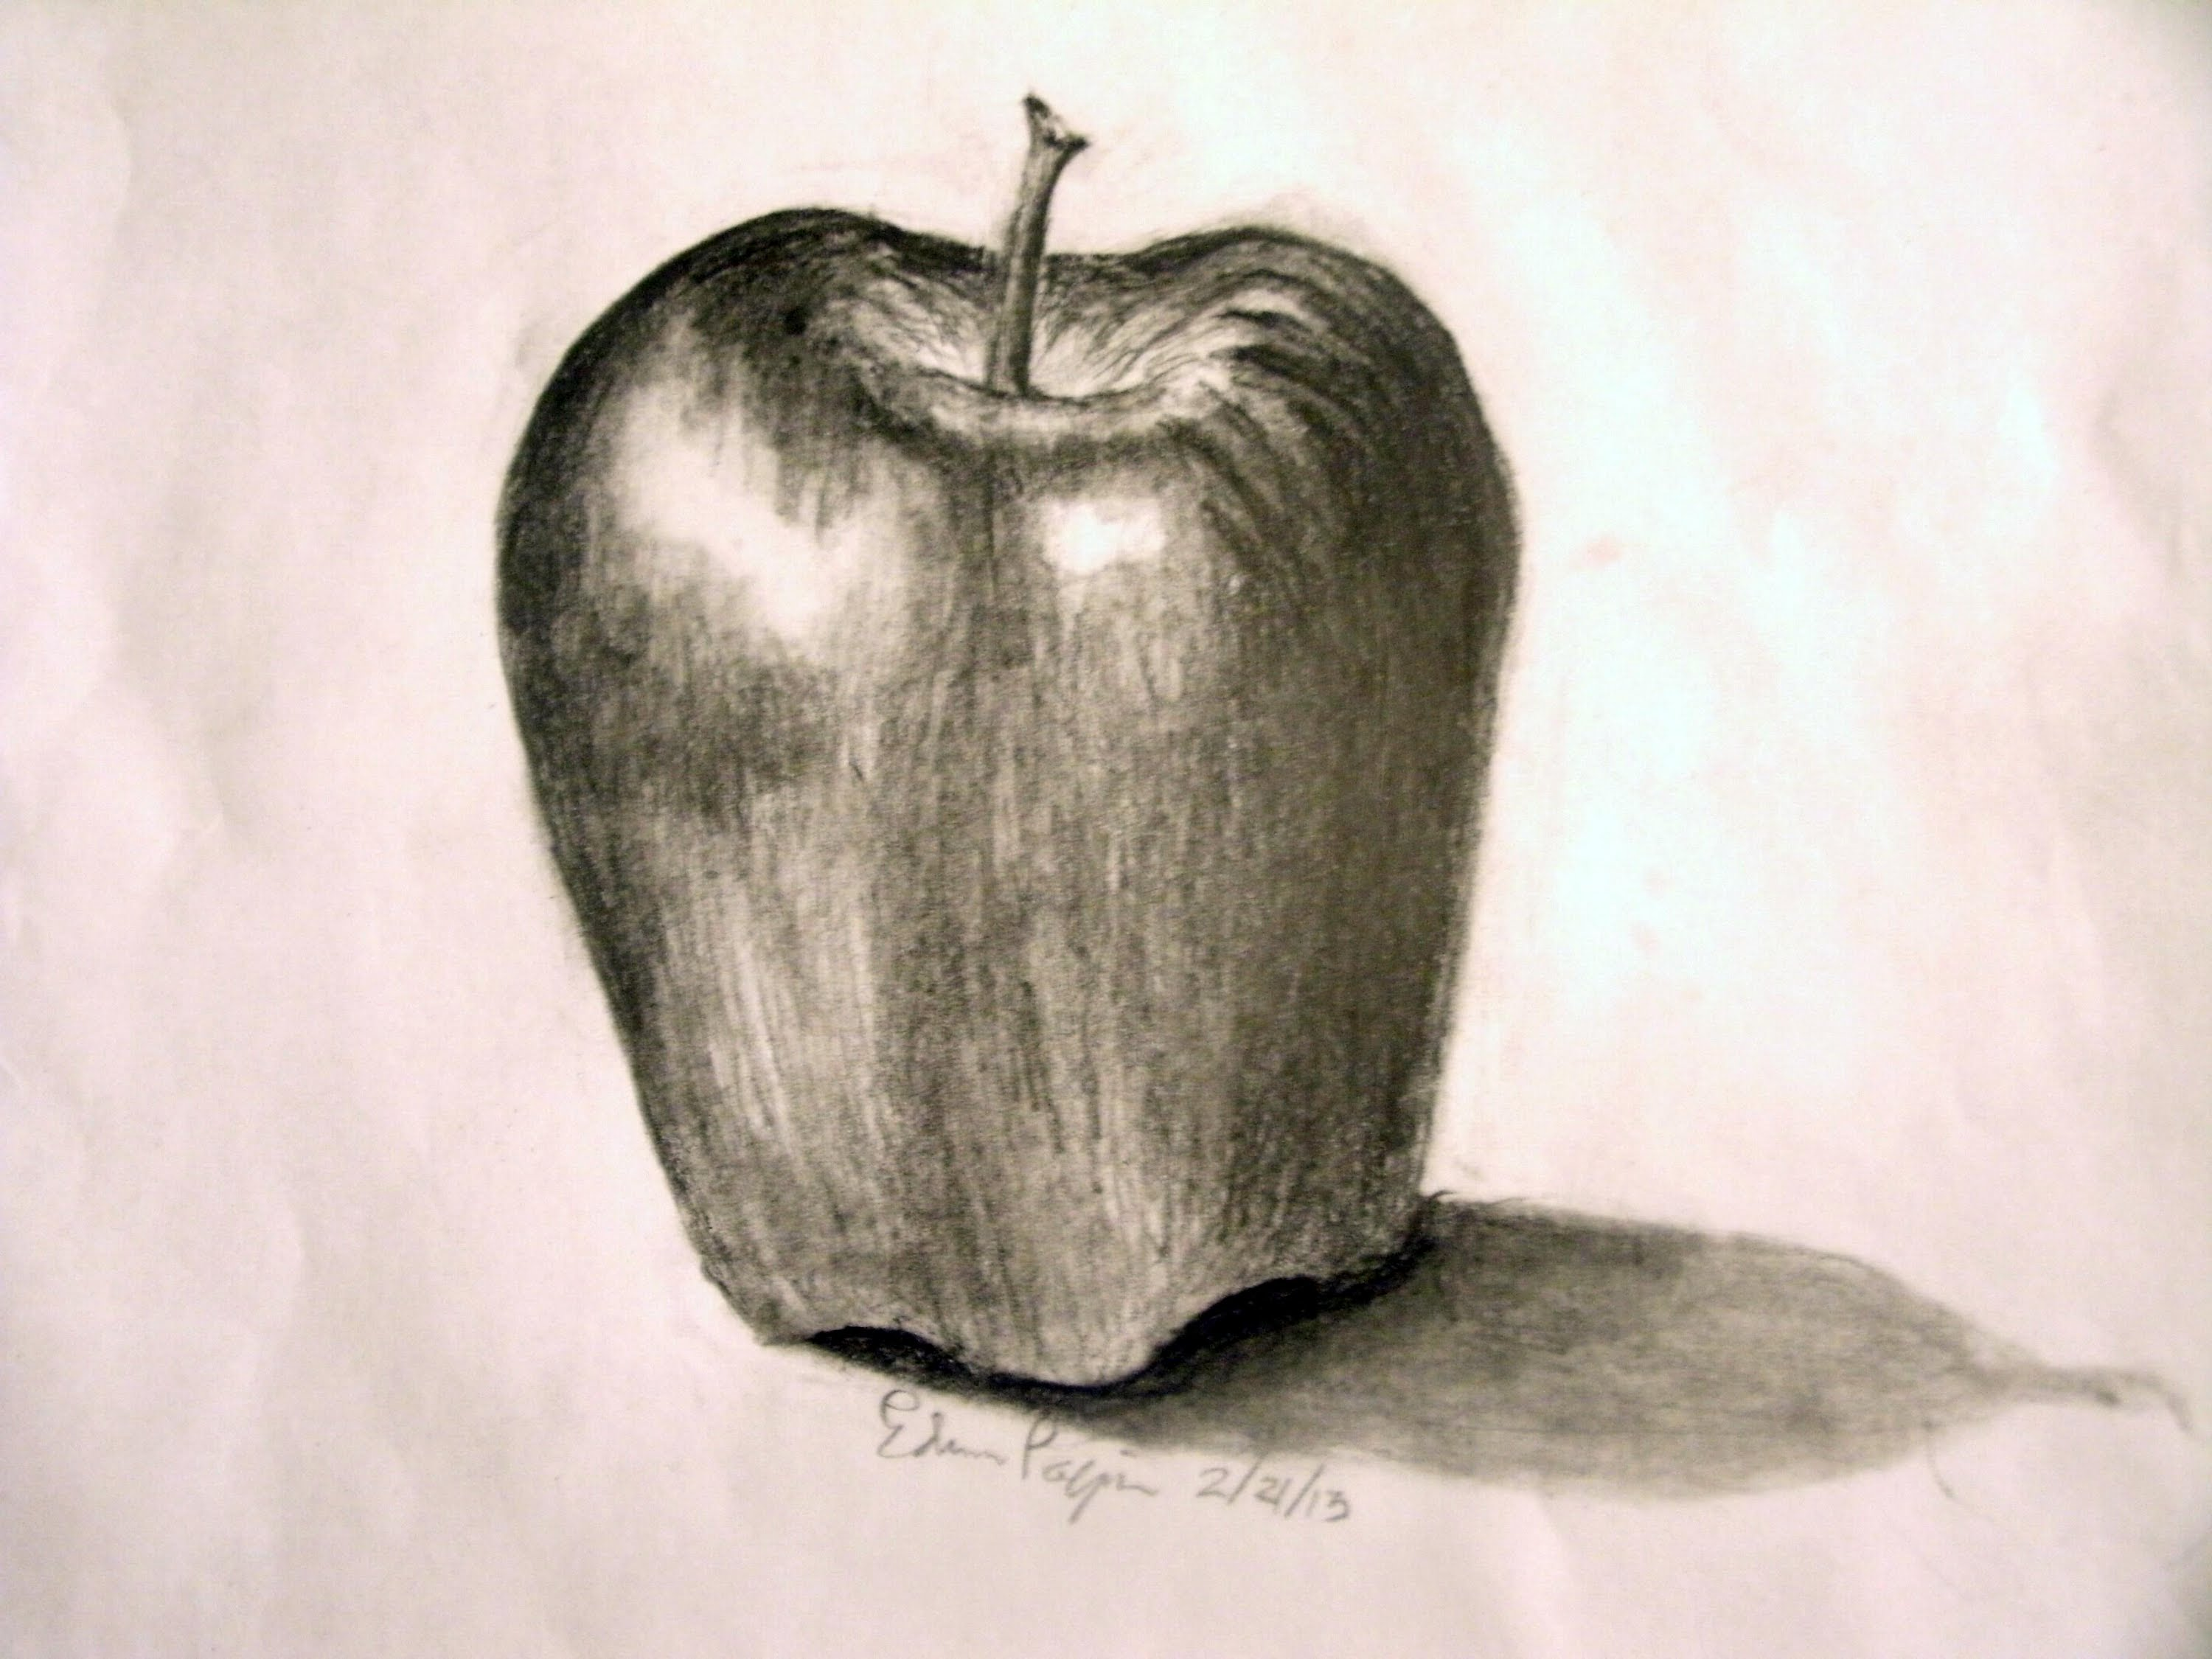 Drawn pen apple To in Pencil Realistic a